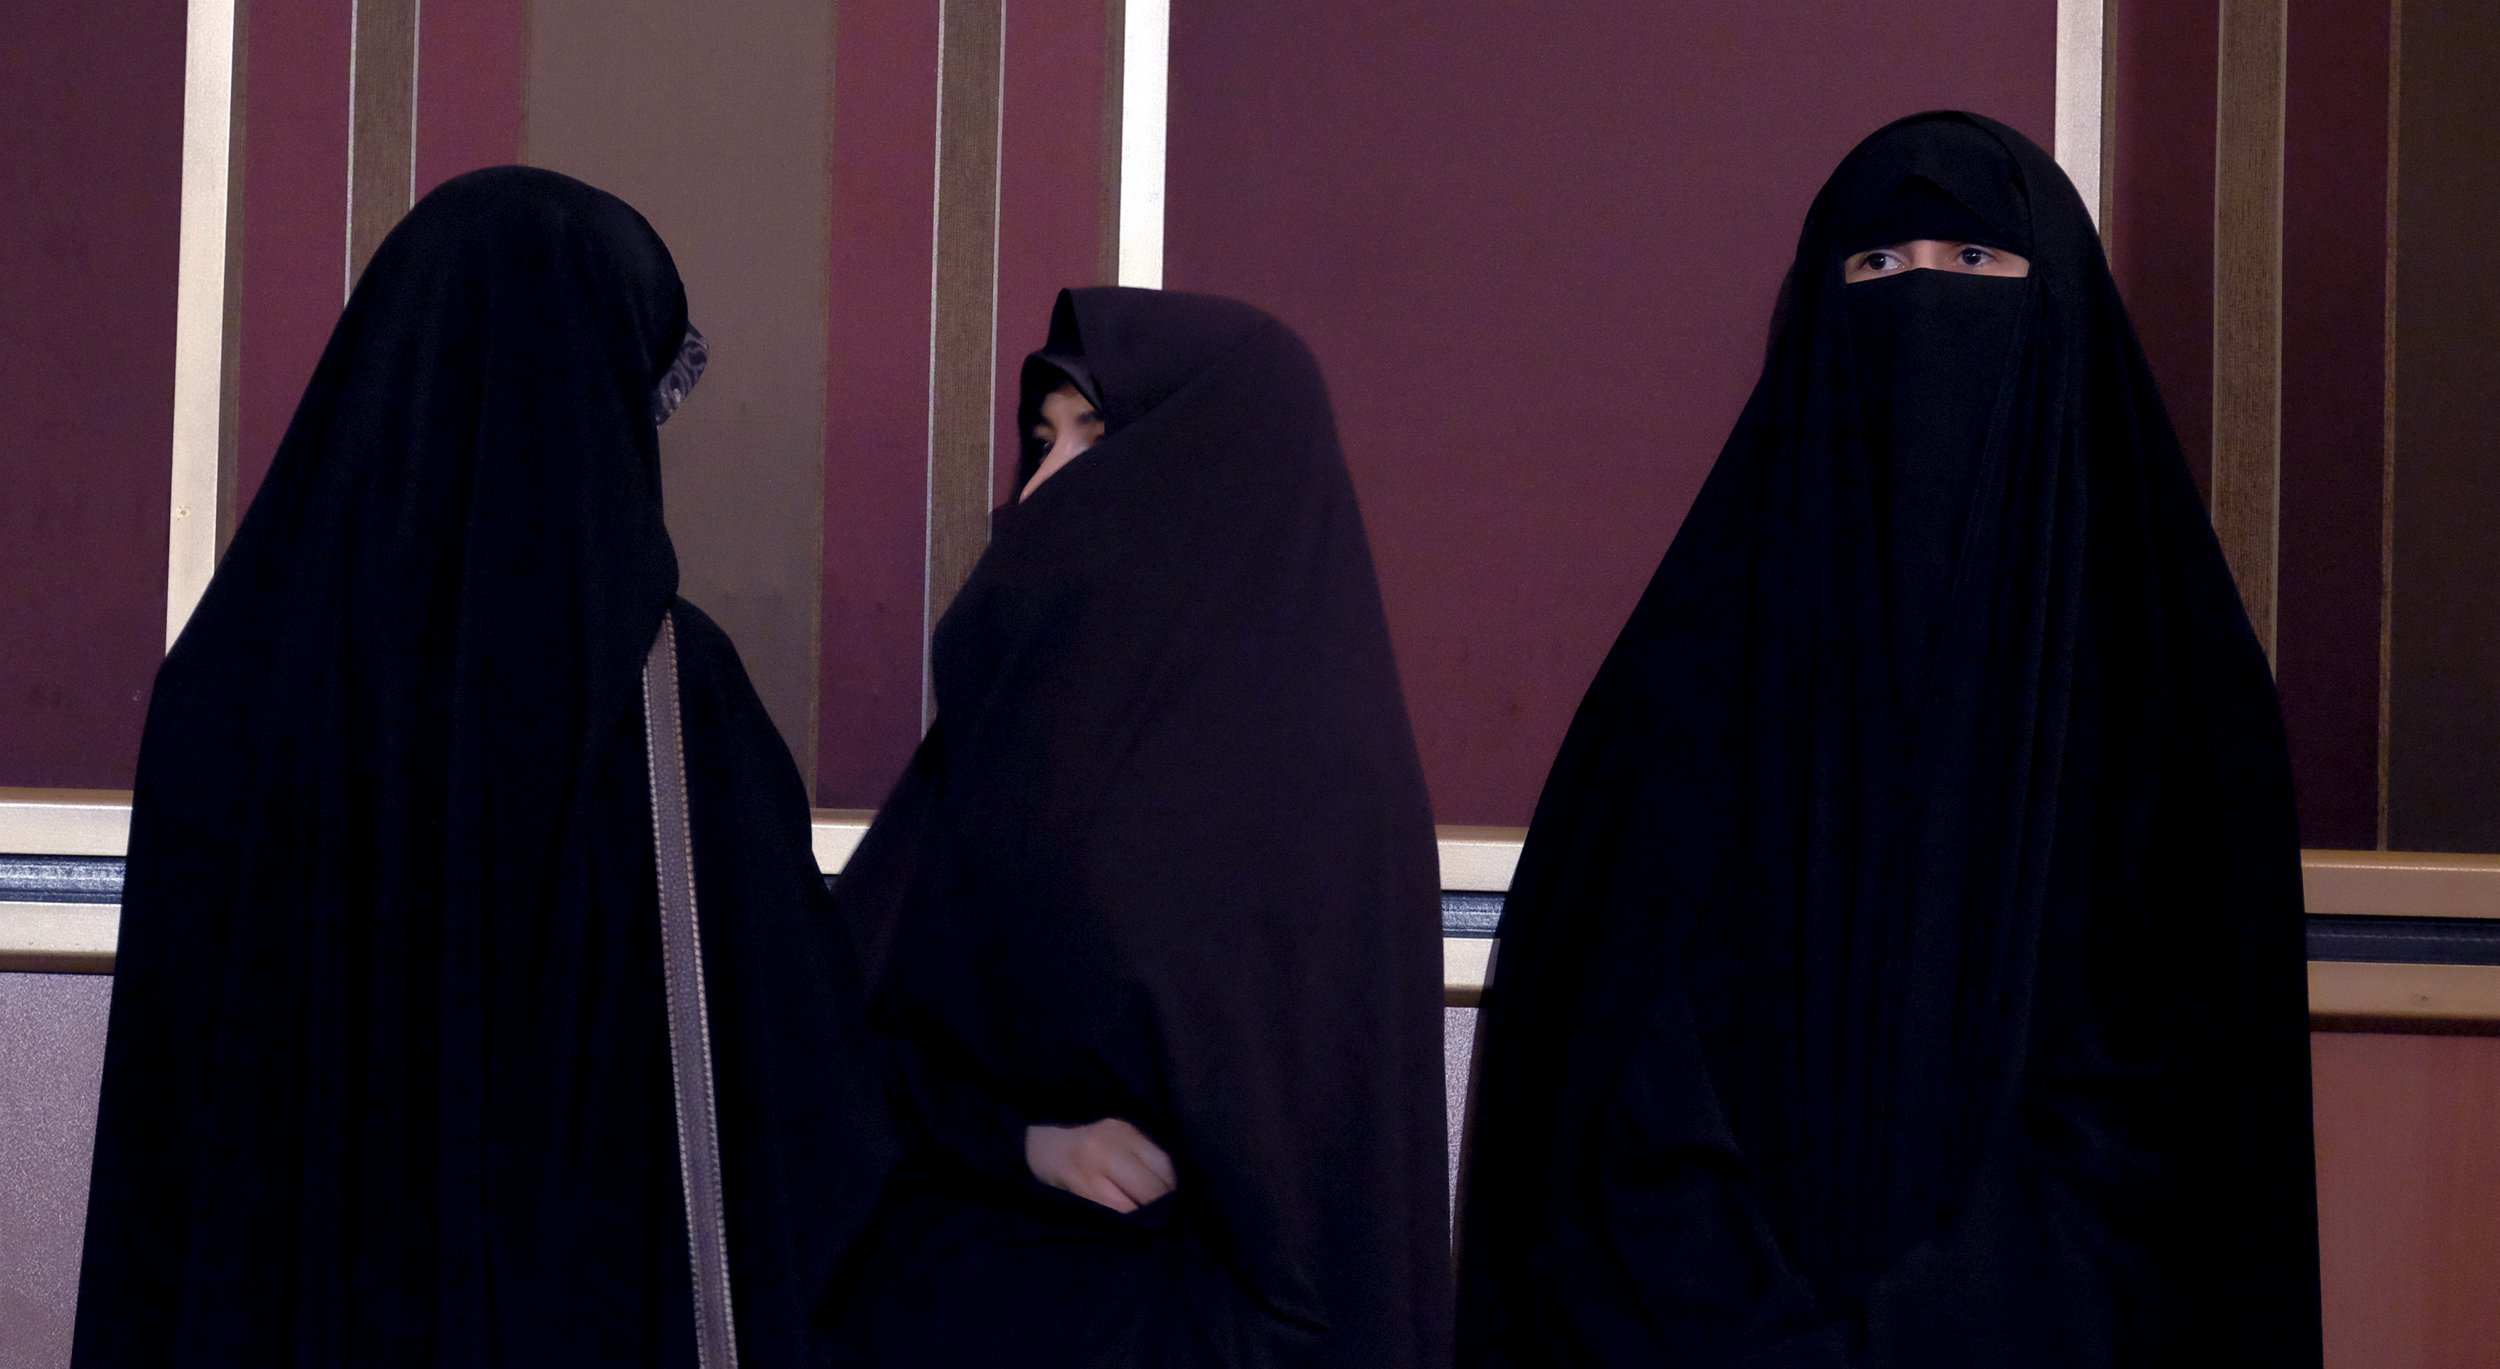 Veiled Iranian women in Tehran